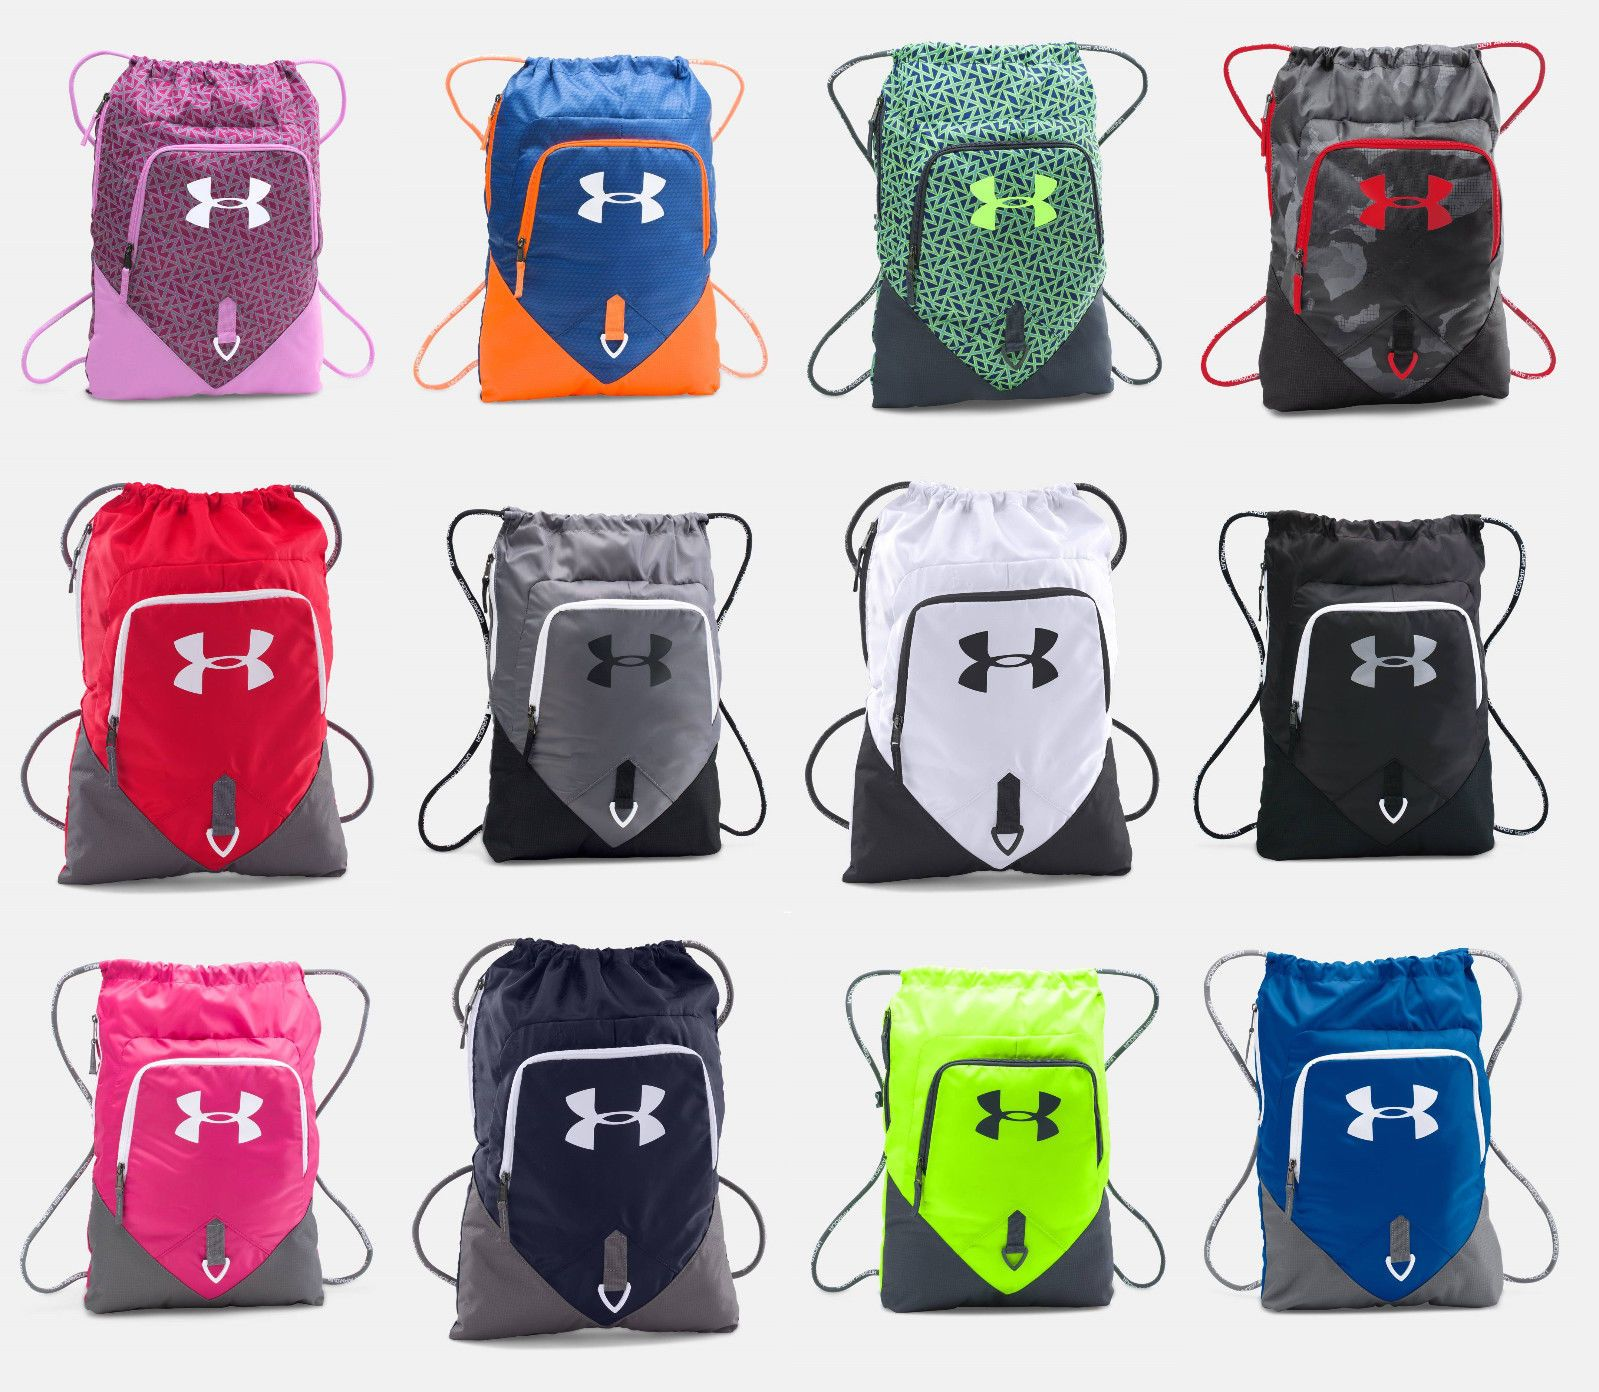 Under Armour Undeniable Sackpack UA Drawstring Backpack Sack Pack Sport Gym  Bag eb690f8409